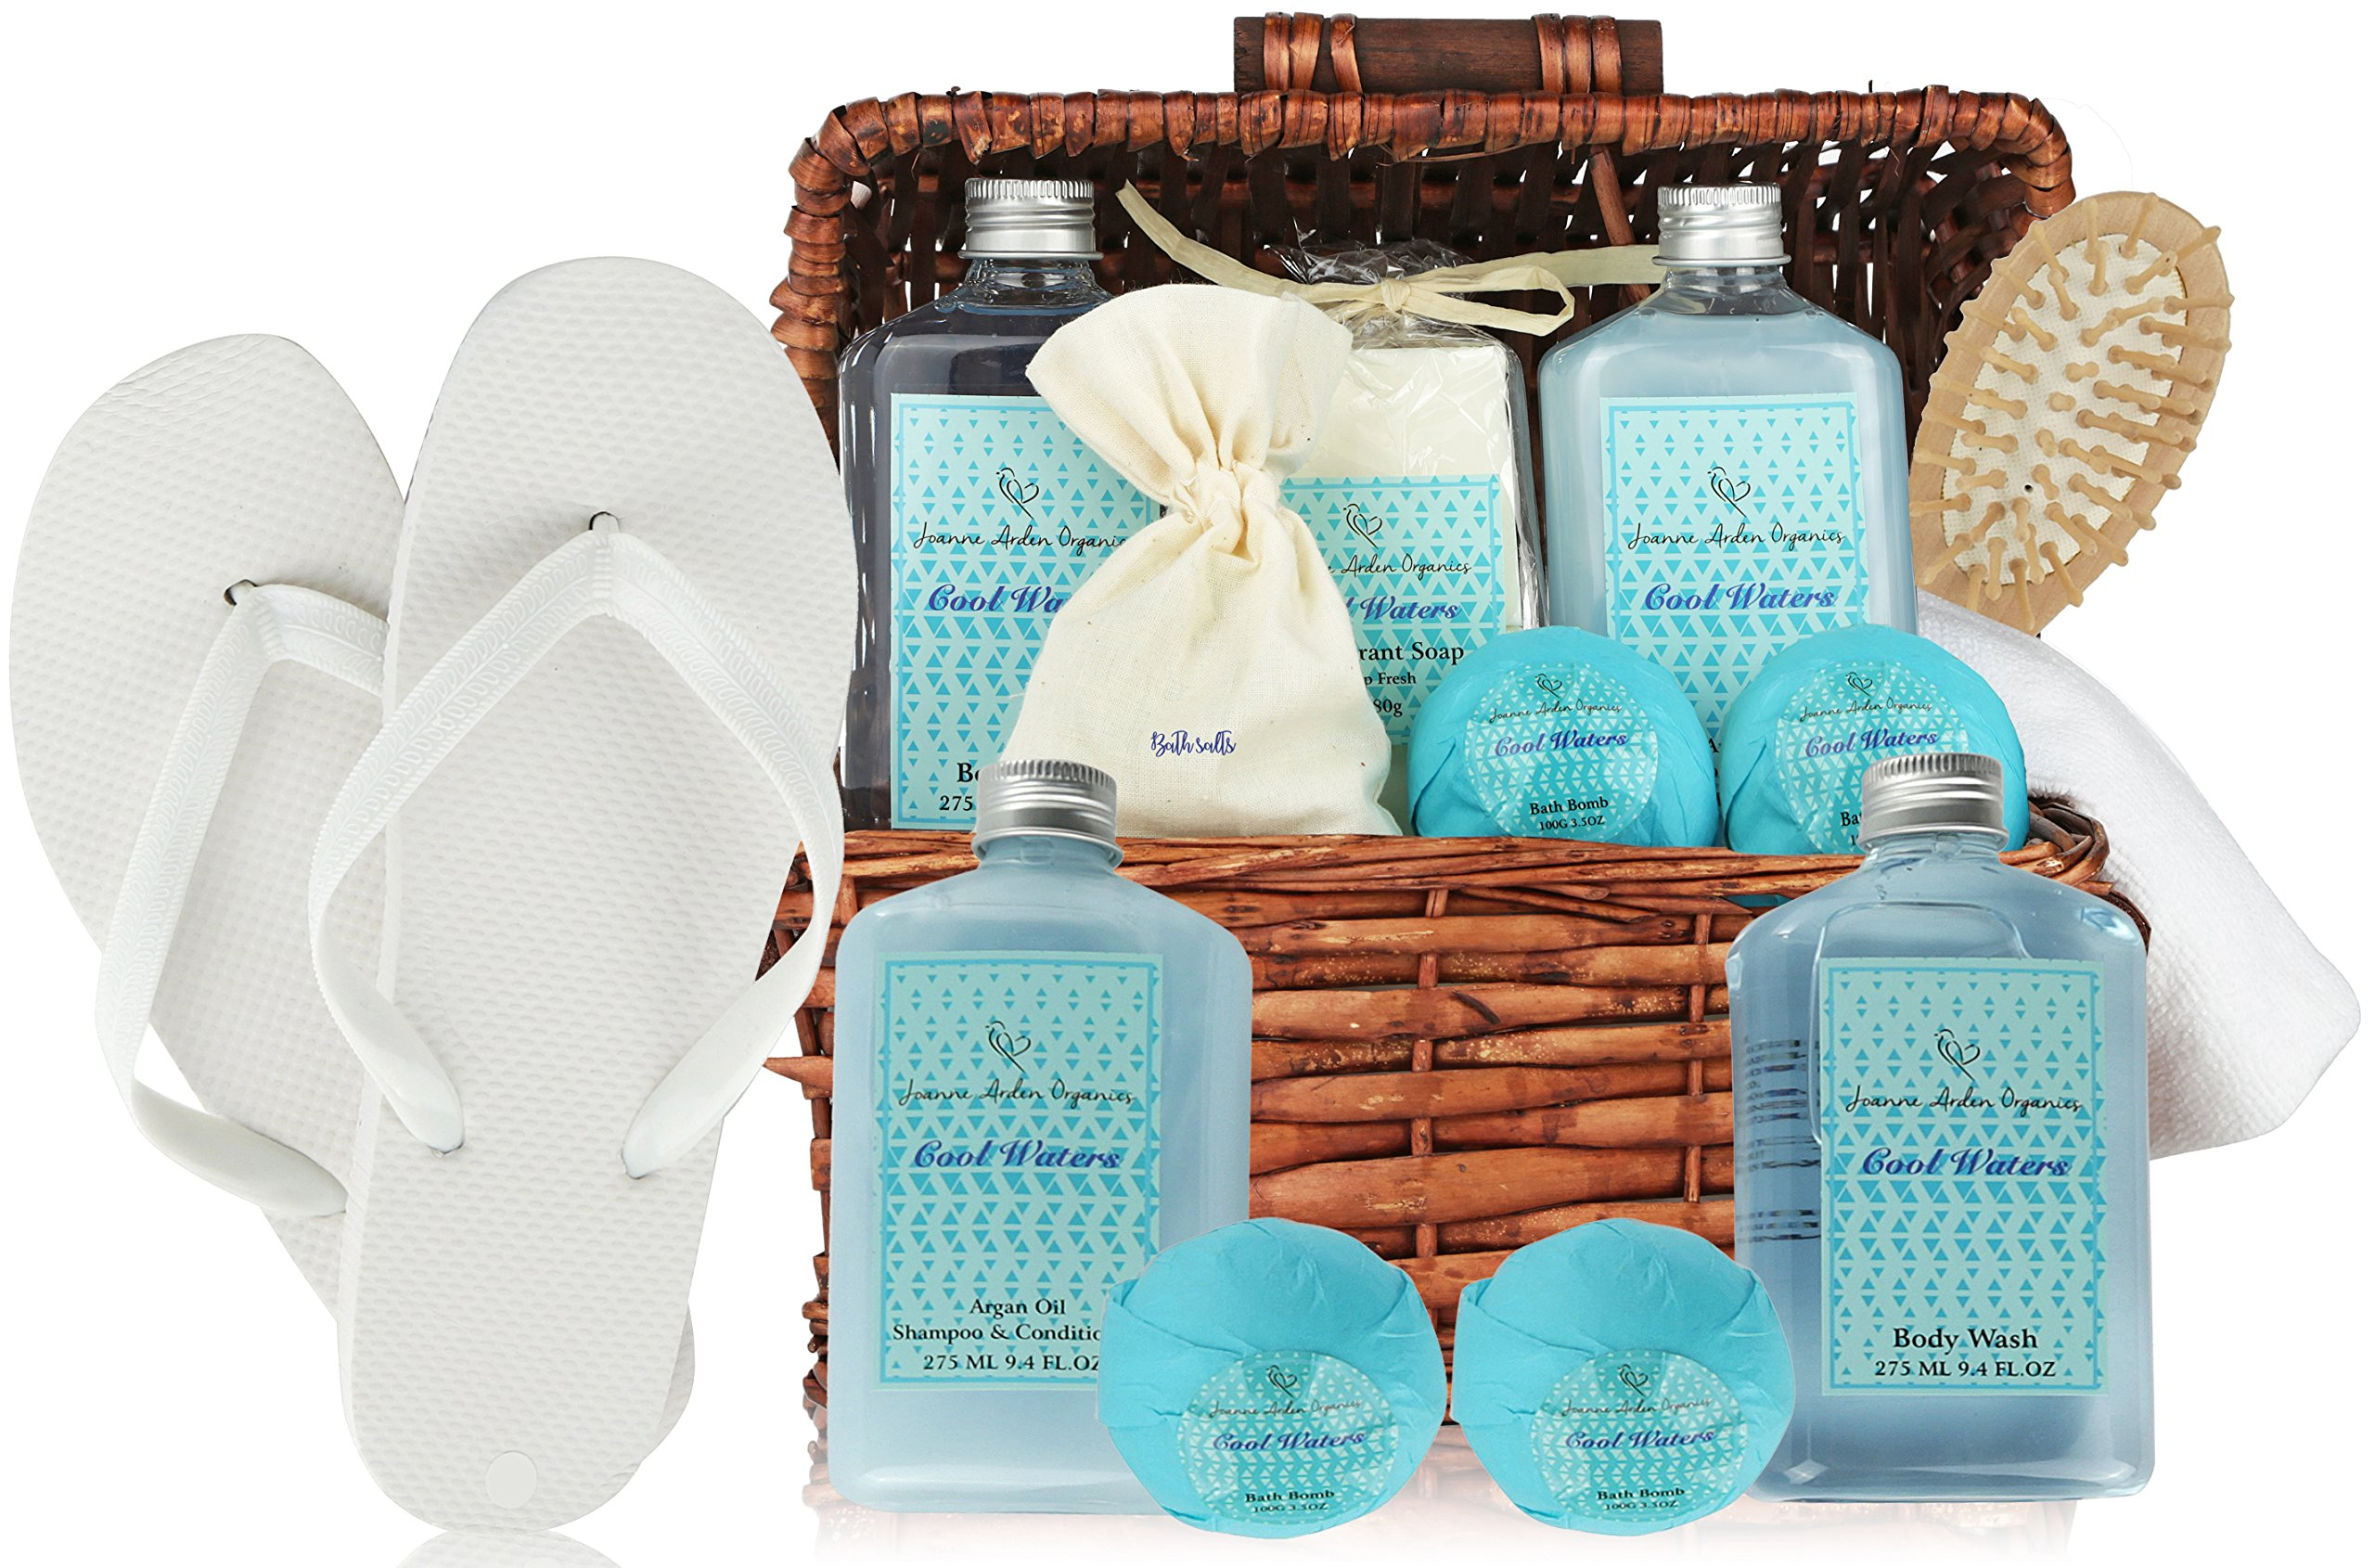 deluxe spa basket cool waters gift baskets for men women bath body